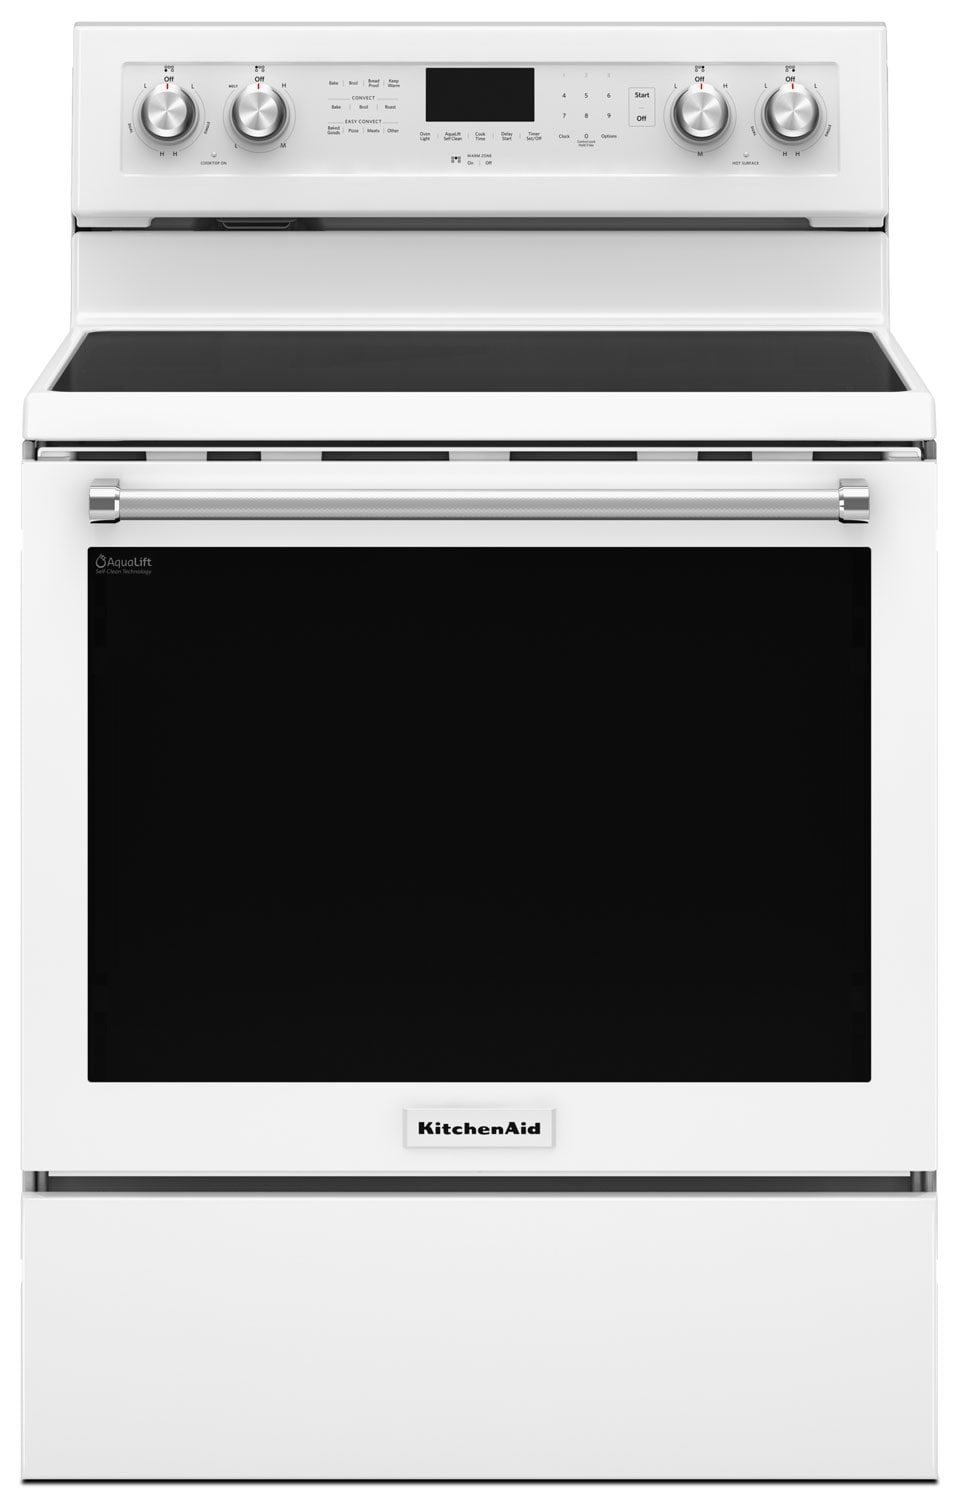 KitchenAid 6.4 Cu Ft. Five-Element Electric Convection Range - White